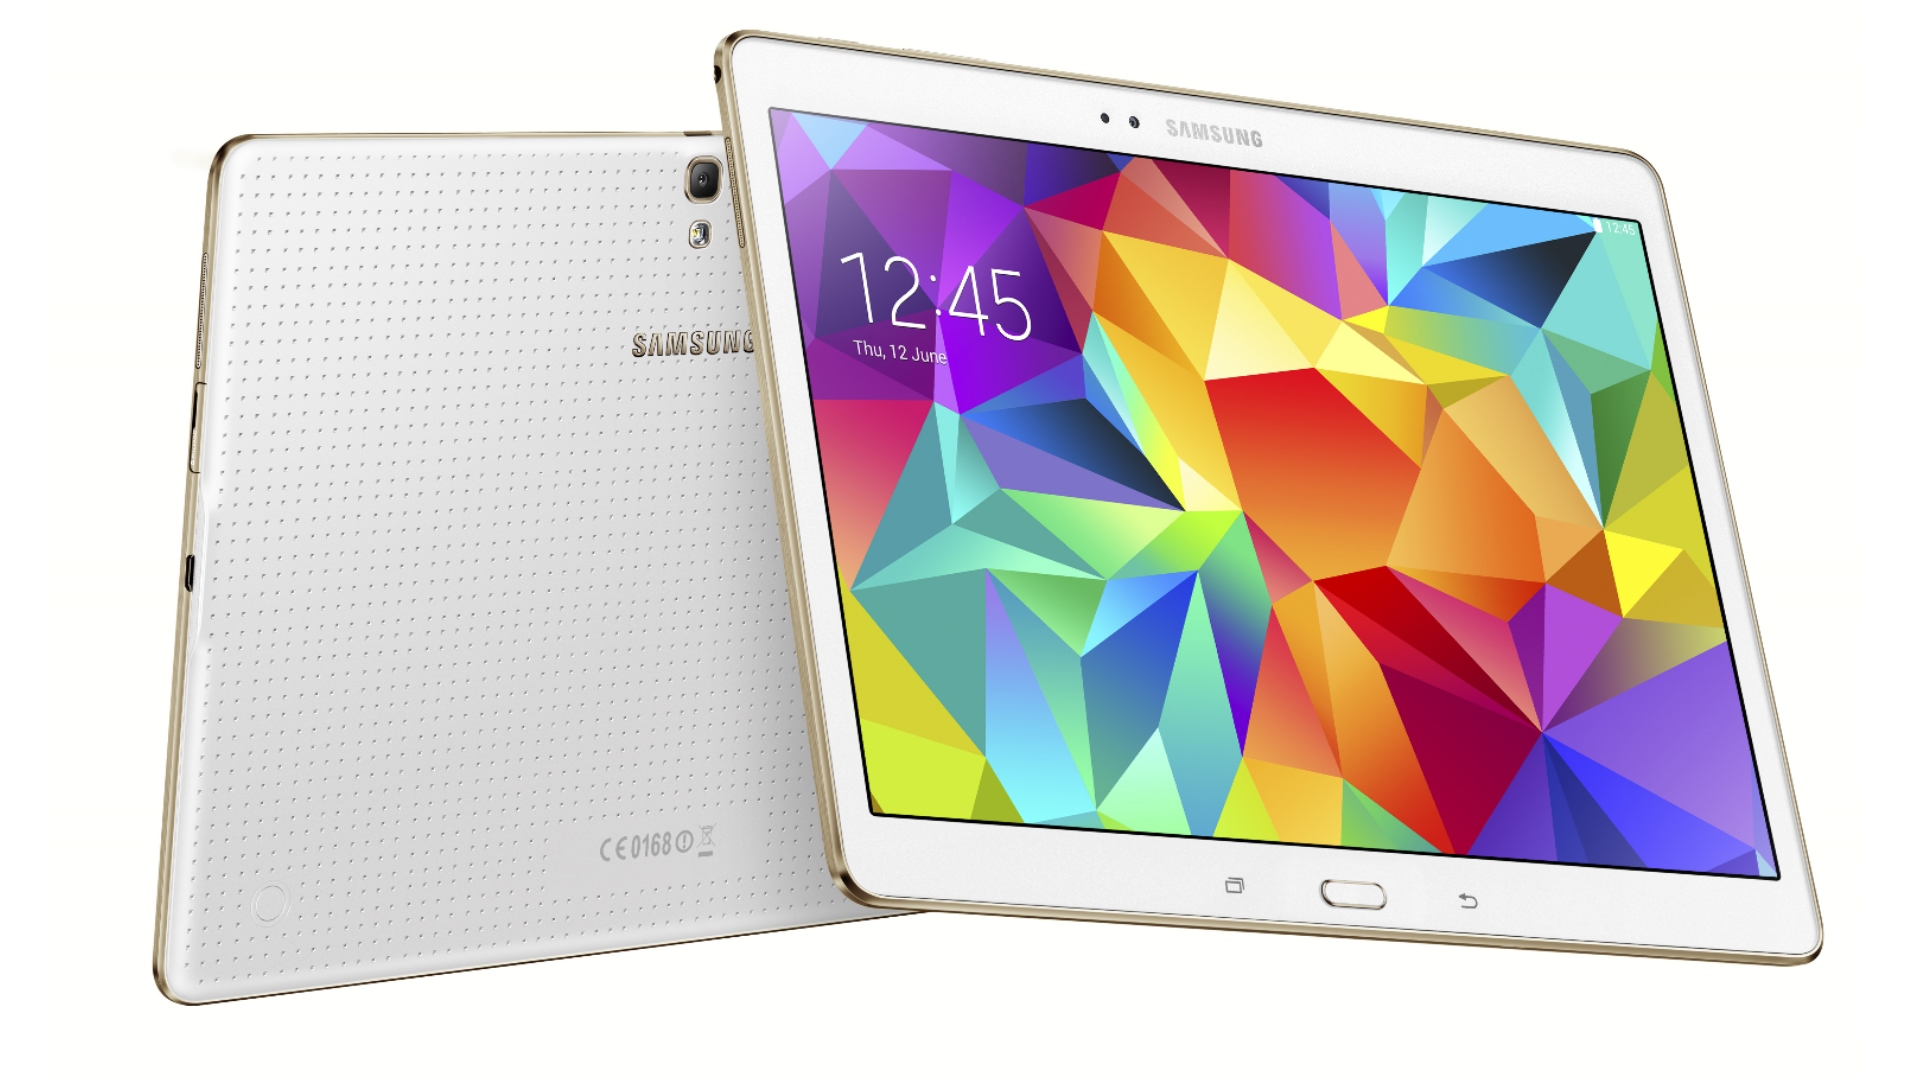 The best Samsung Galaxy Tab deals on Amazon Prime Day 2018 1531414746_504_the-best-samsung-galaxy-tab-deals-on-amazon-prime-day-2018